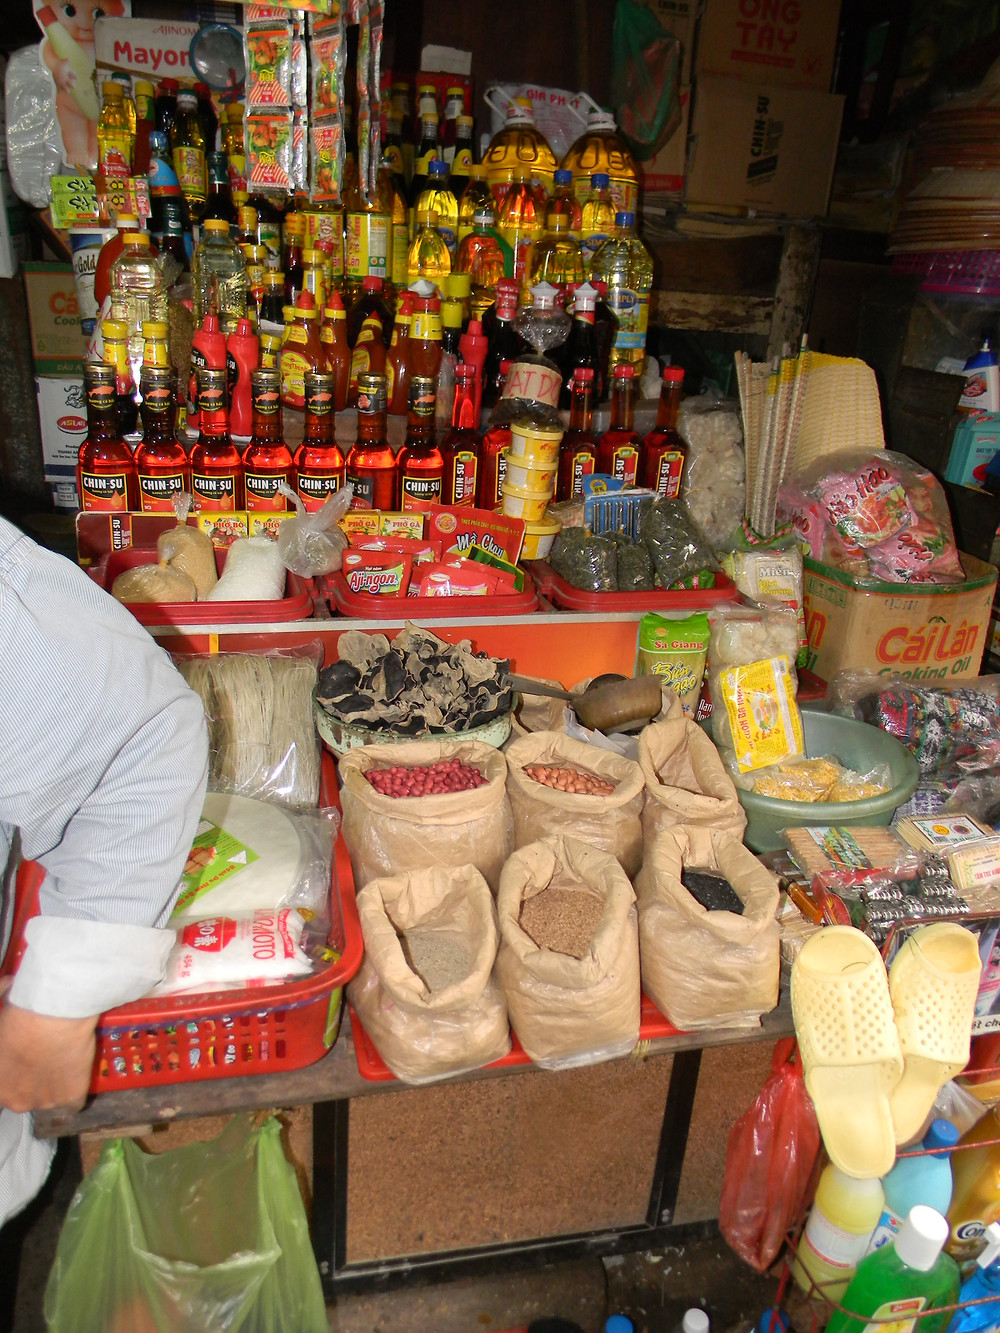 Cooking ingredients from the market